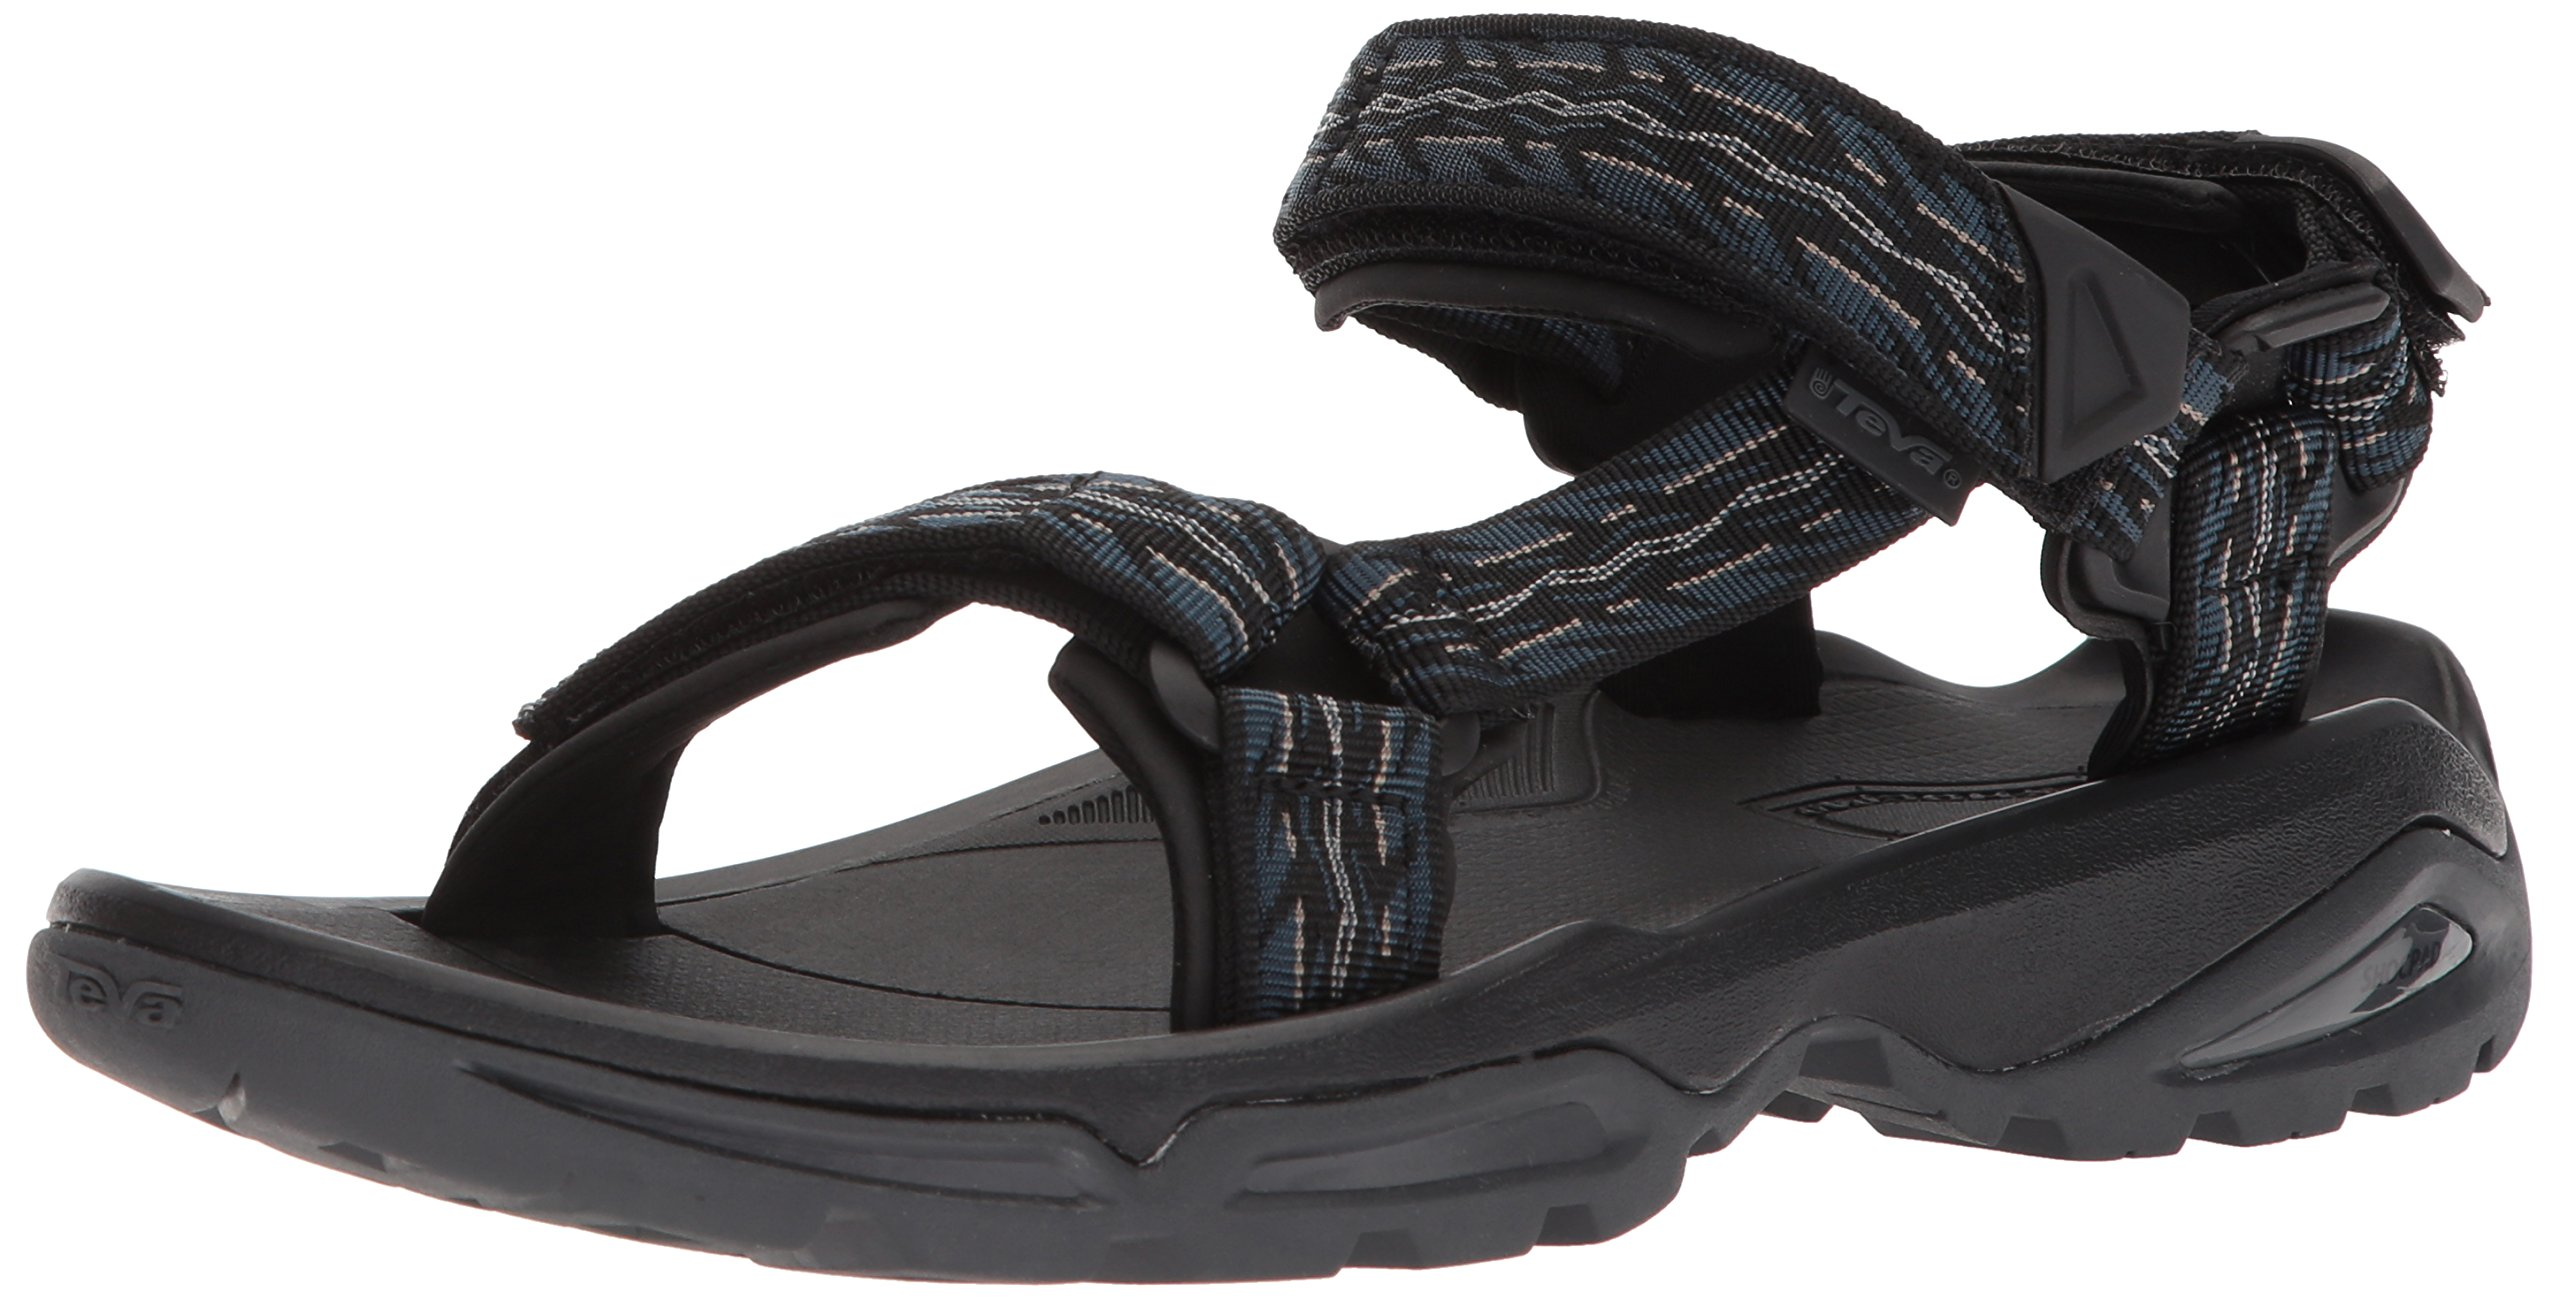 Teva Men's M Terra FI 4 Sport Sandal, Firetread Midnight, 10 M US by Teva